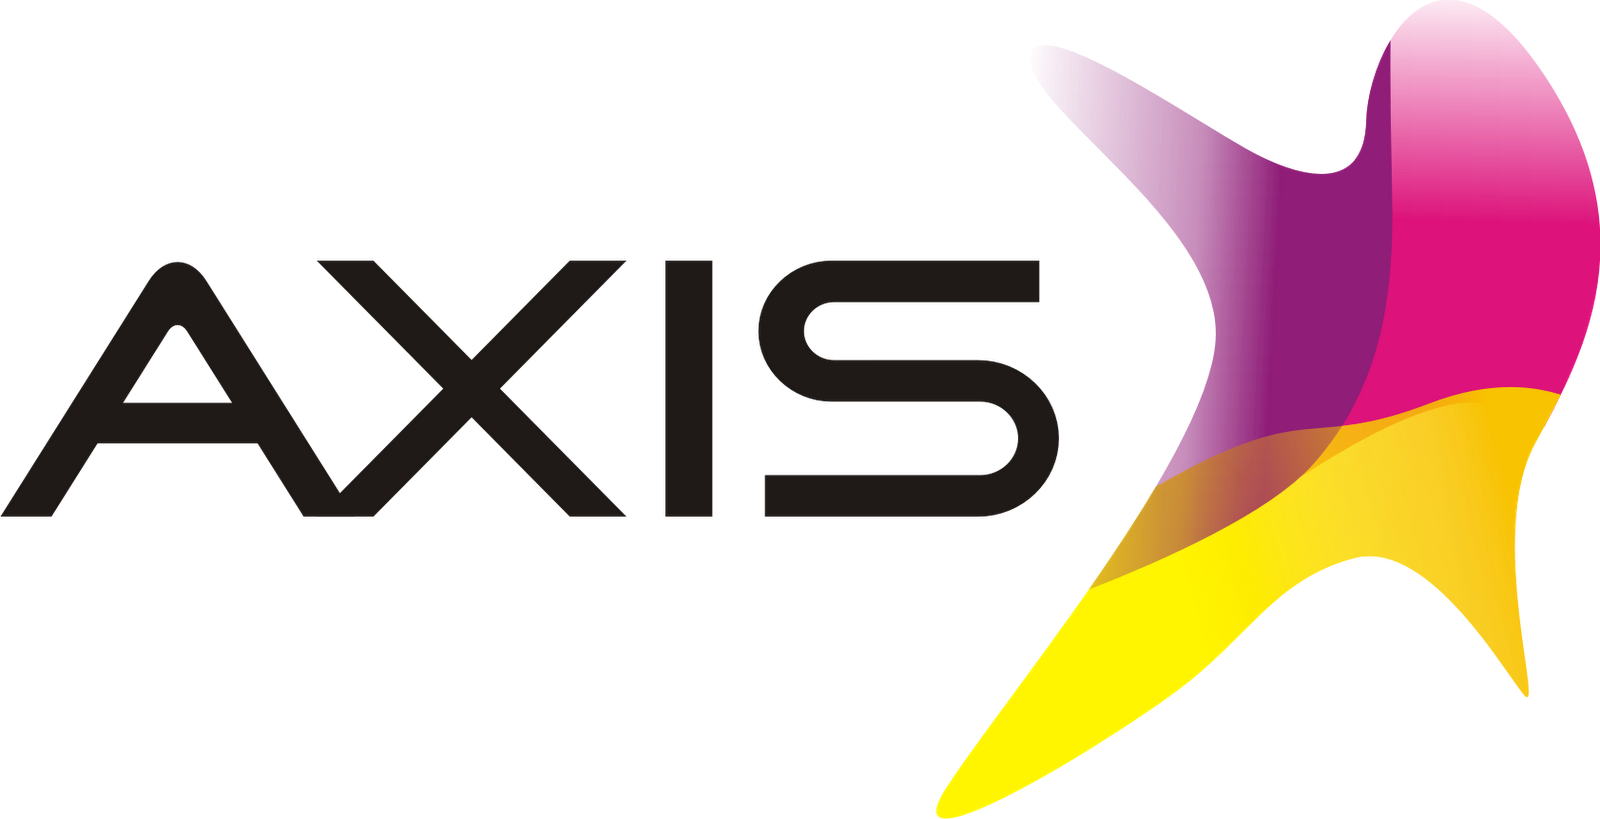 Image Axis Logo Download